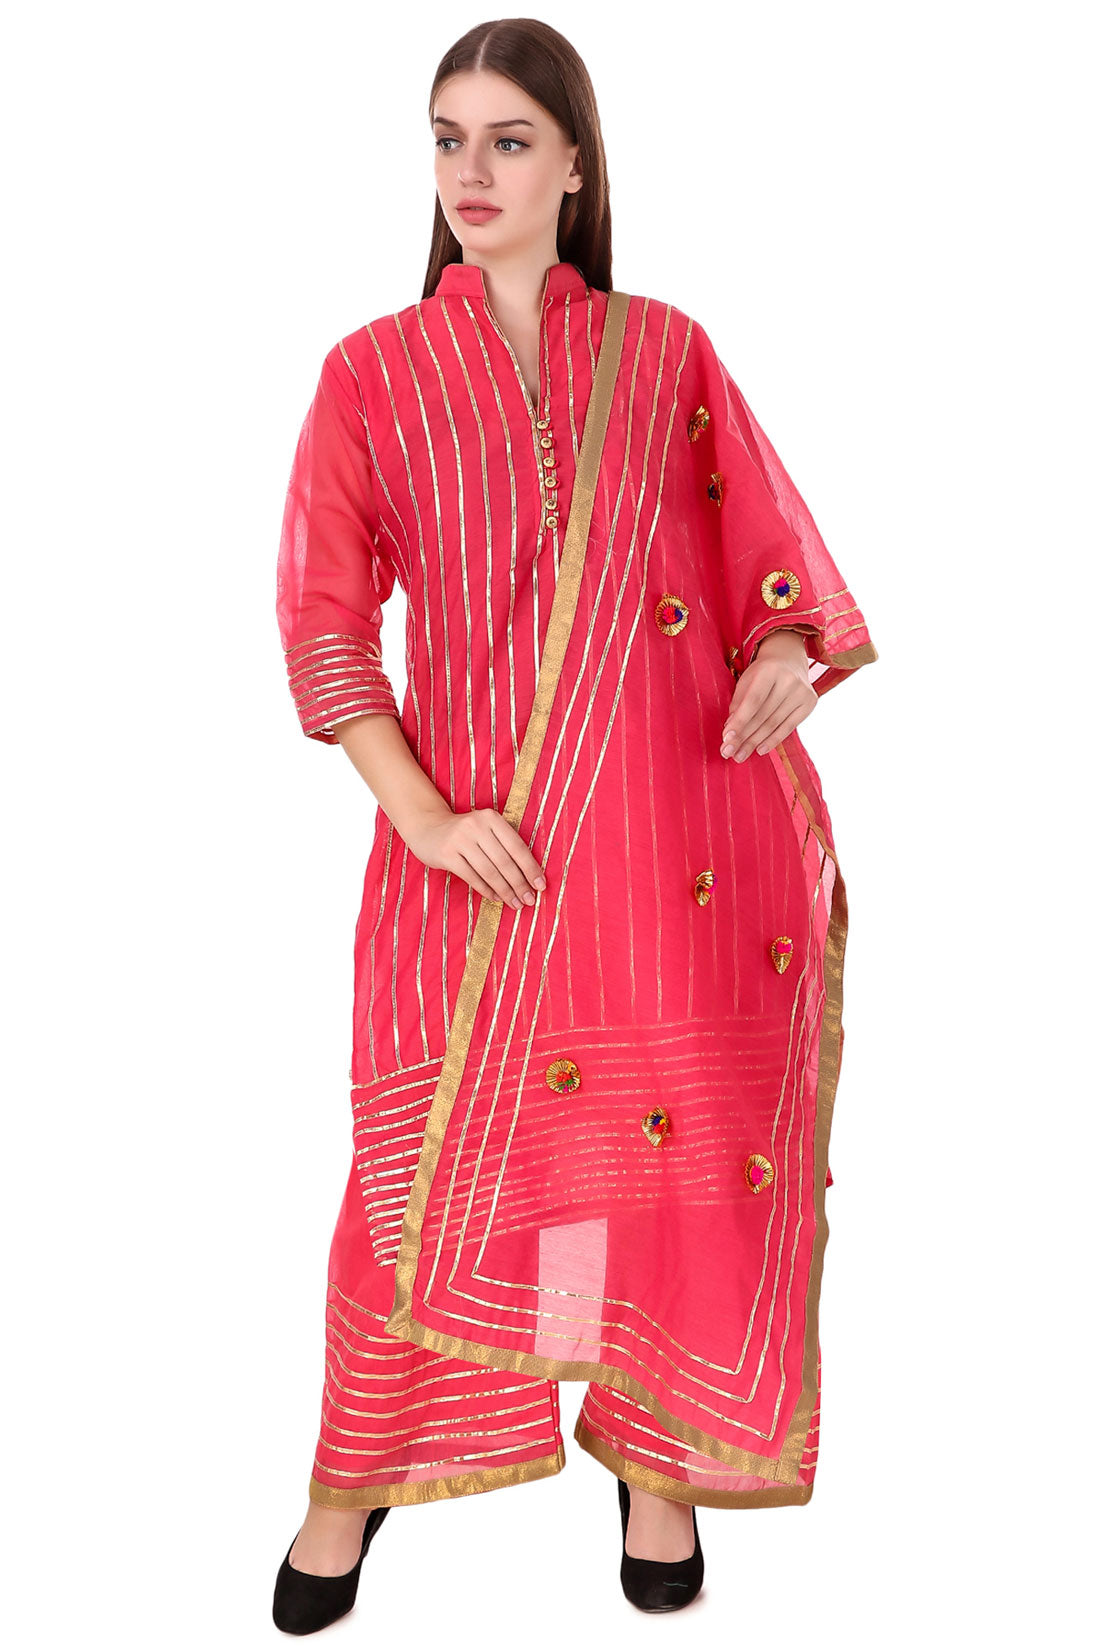 Fasense Coral Red Stripped Kurta and Palazzo Set for Women, VG010